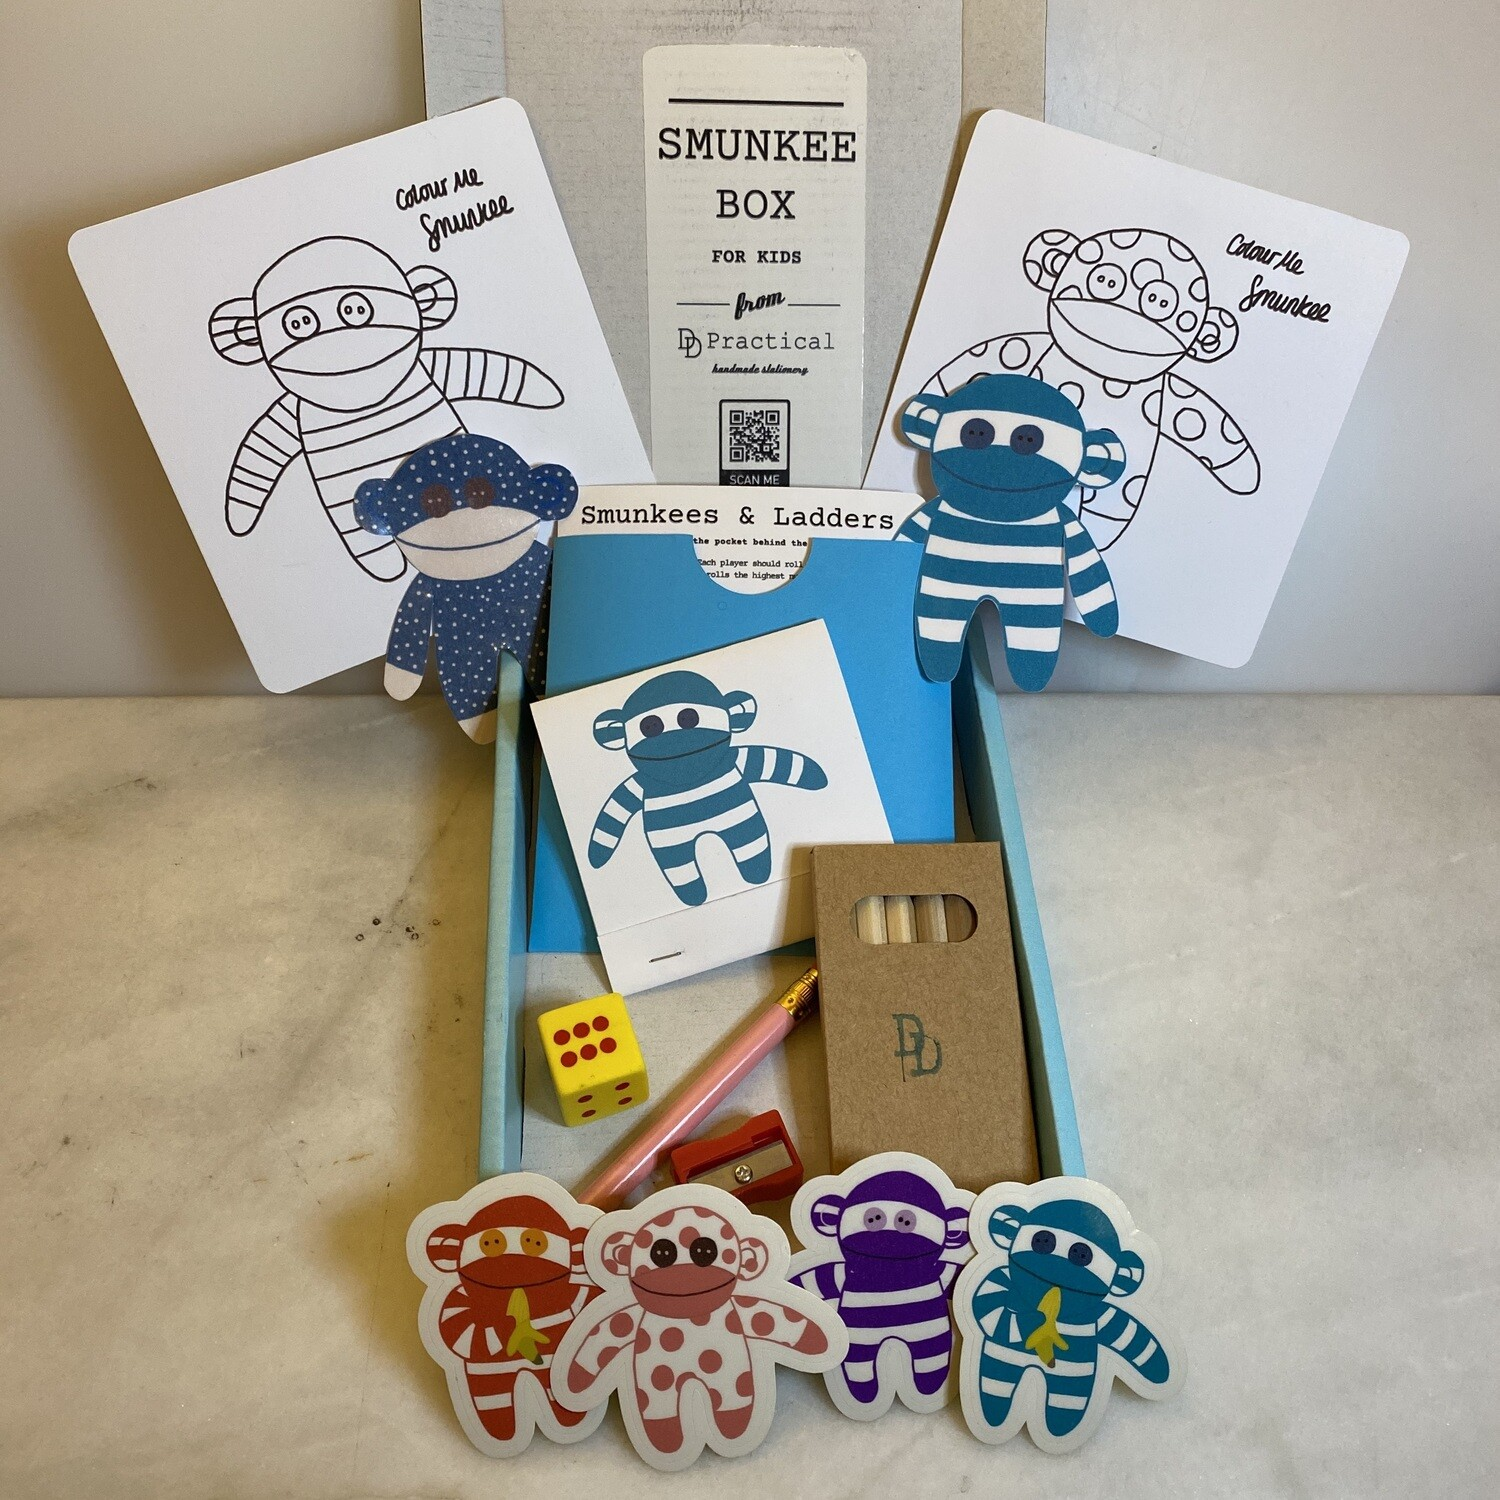 The Smunkee Activity Box